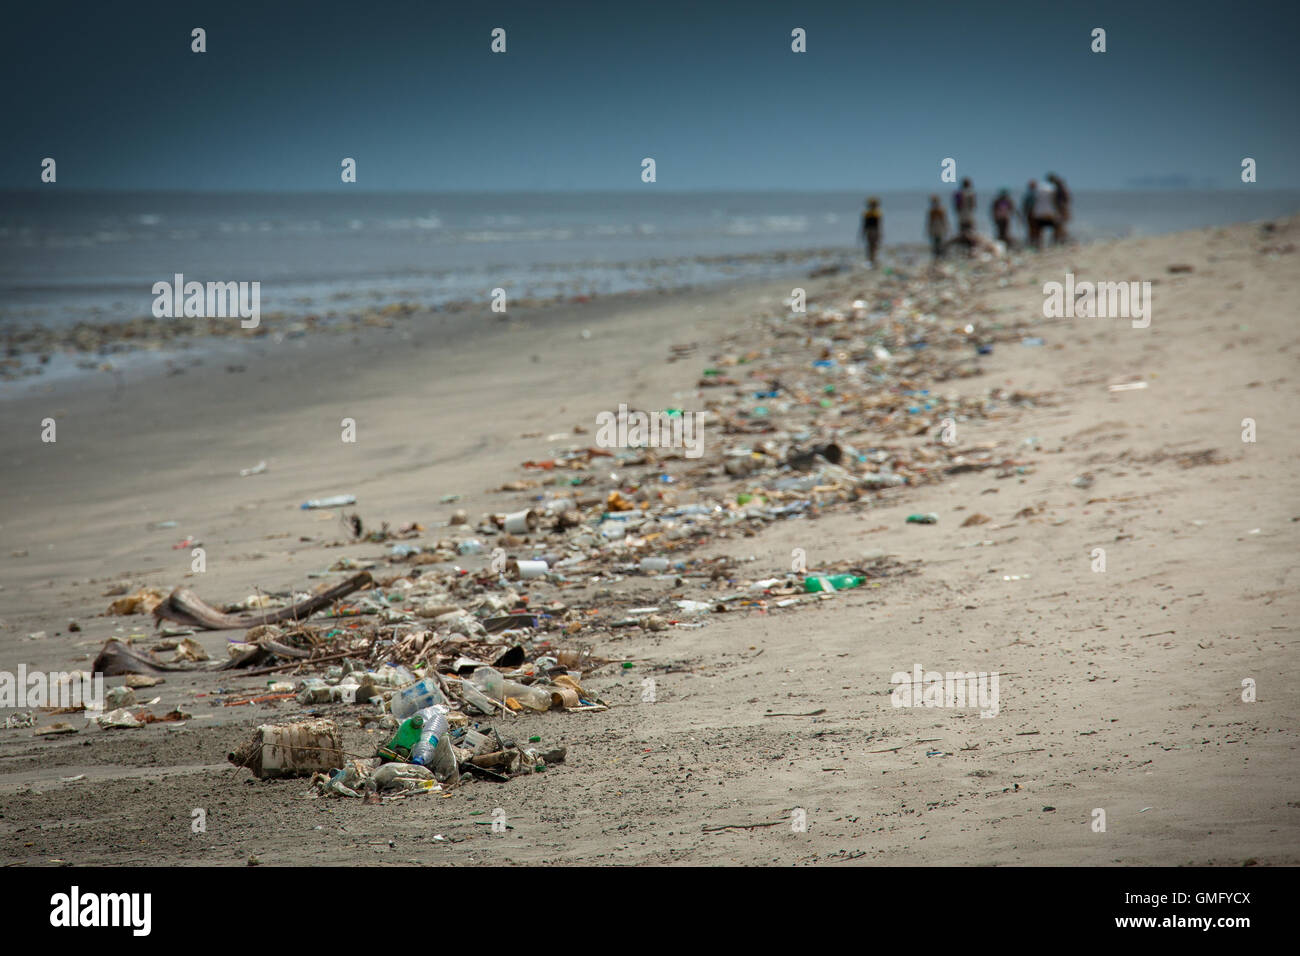 Yongoro, Sierra Leone - June 10, 2013: West Africa, the beaches of Yongoro in front of Freetown - Stock Image